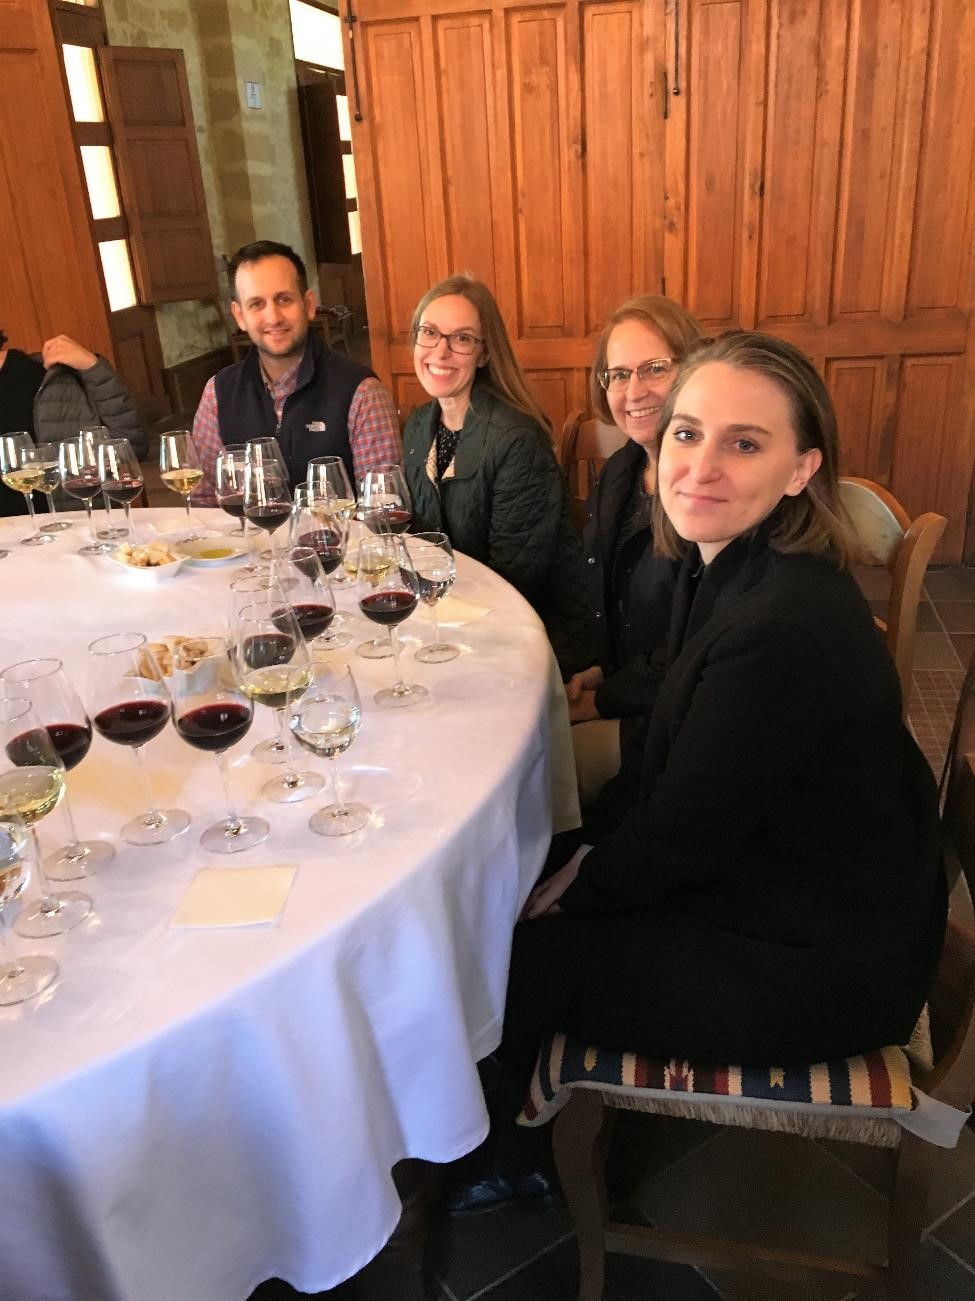 After all that talk of the scenery, I have no pictures of Luis Perez, except this one that shows the awesome wine spread and some great company.